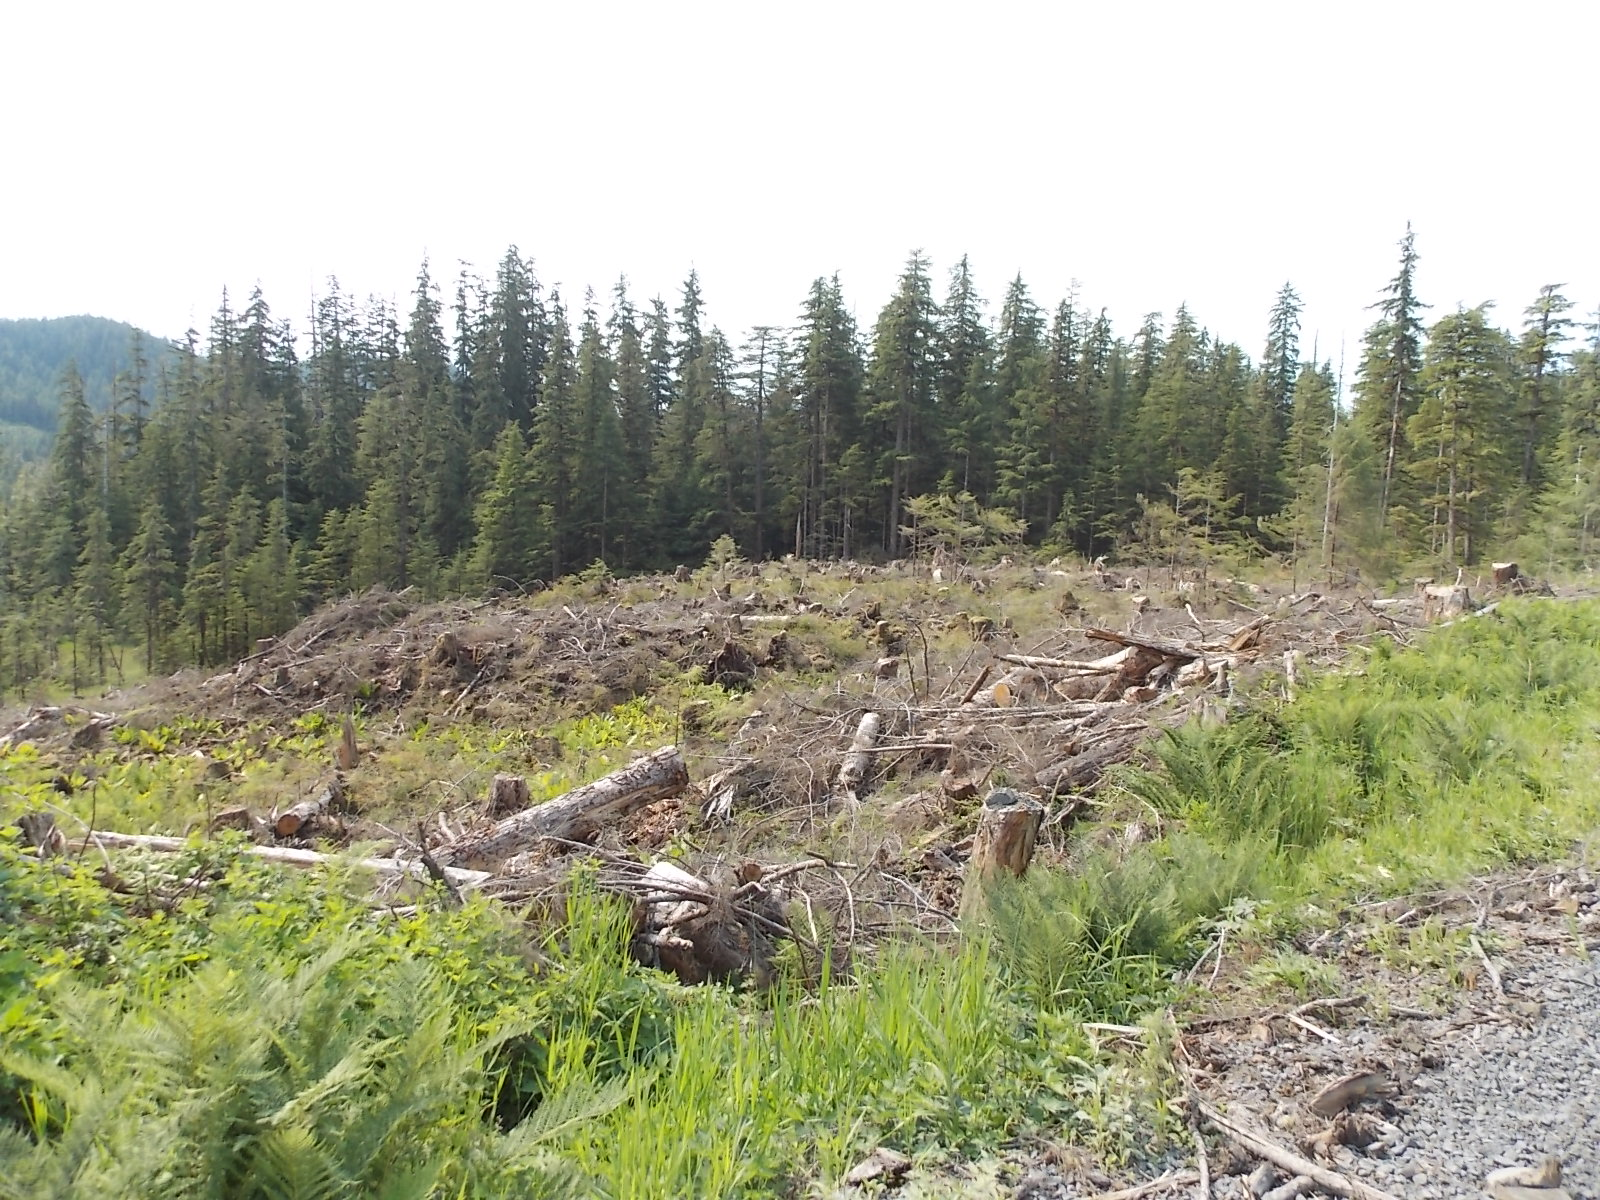 Locals fault forest plan for impacts to deer, salmon habitat